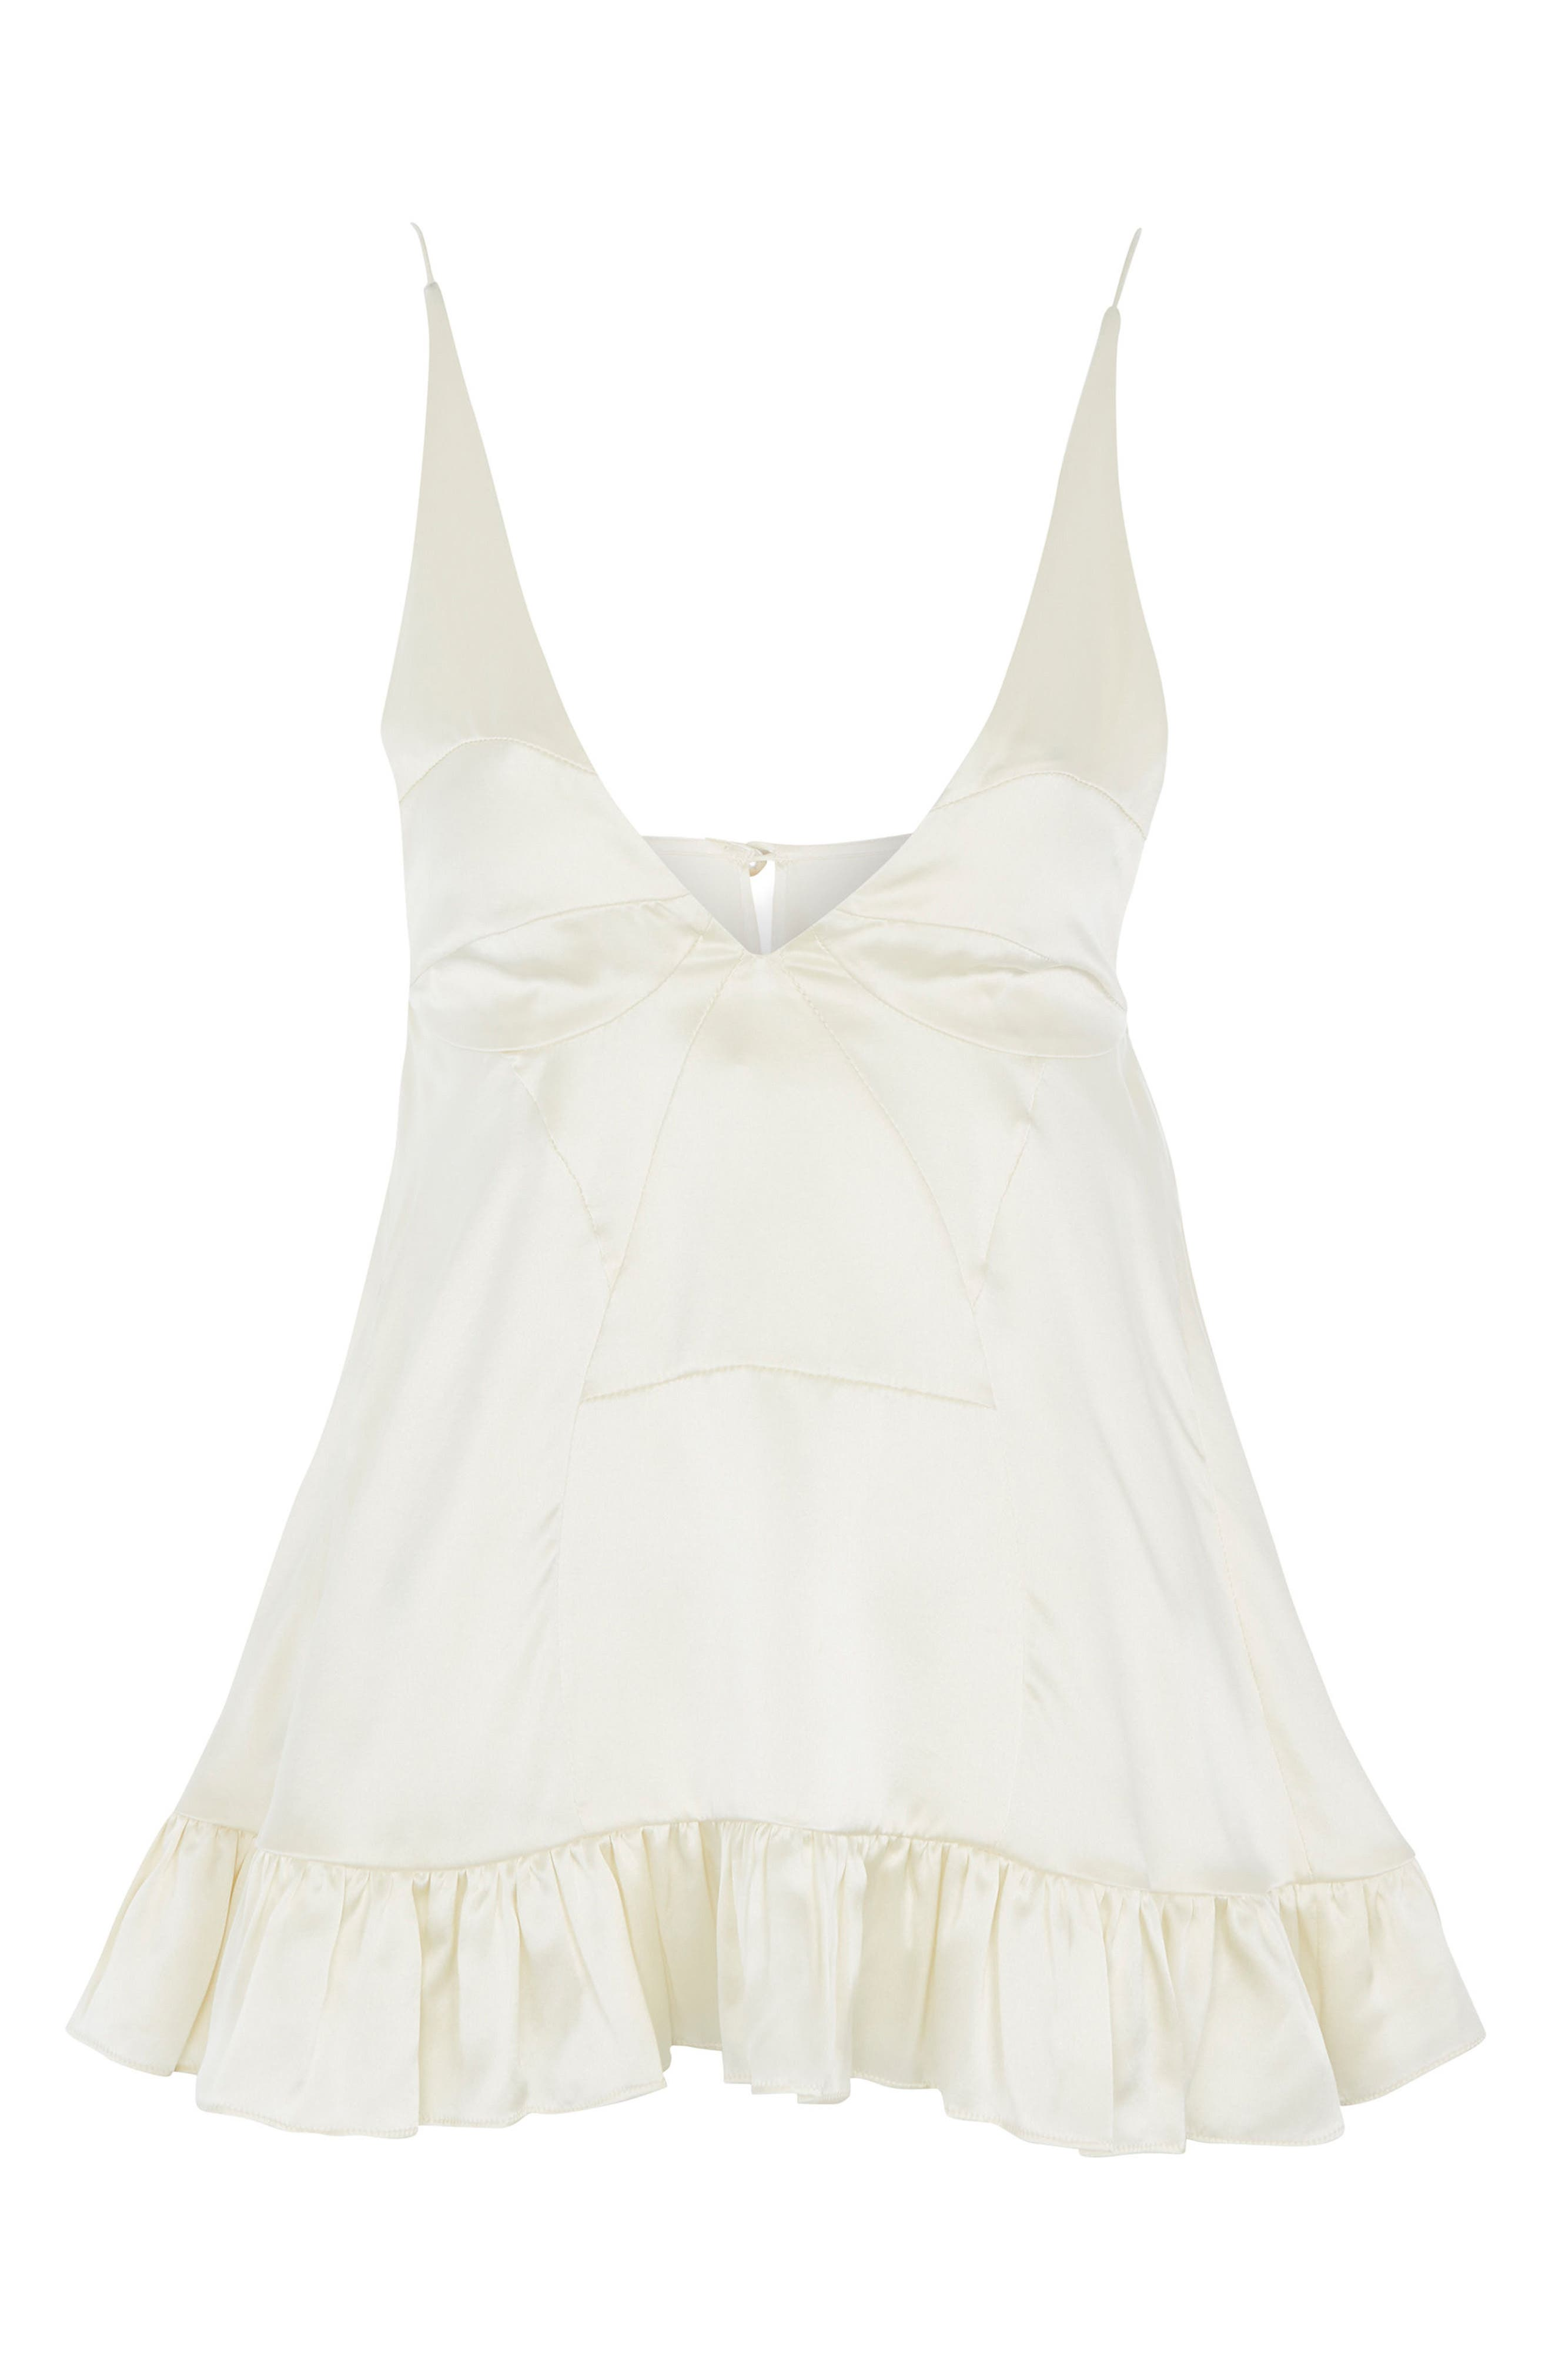 Topshop Satin Ruffle Camisole